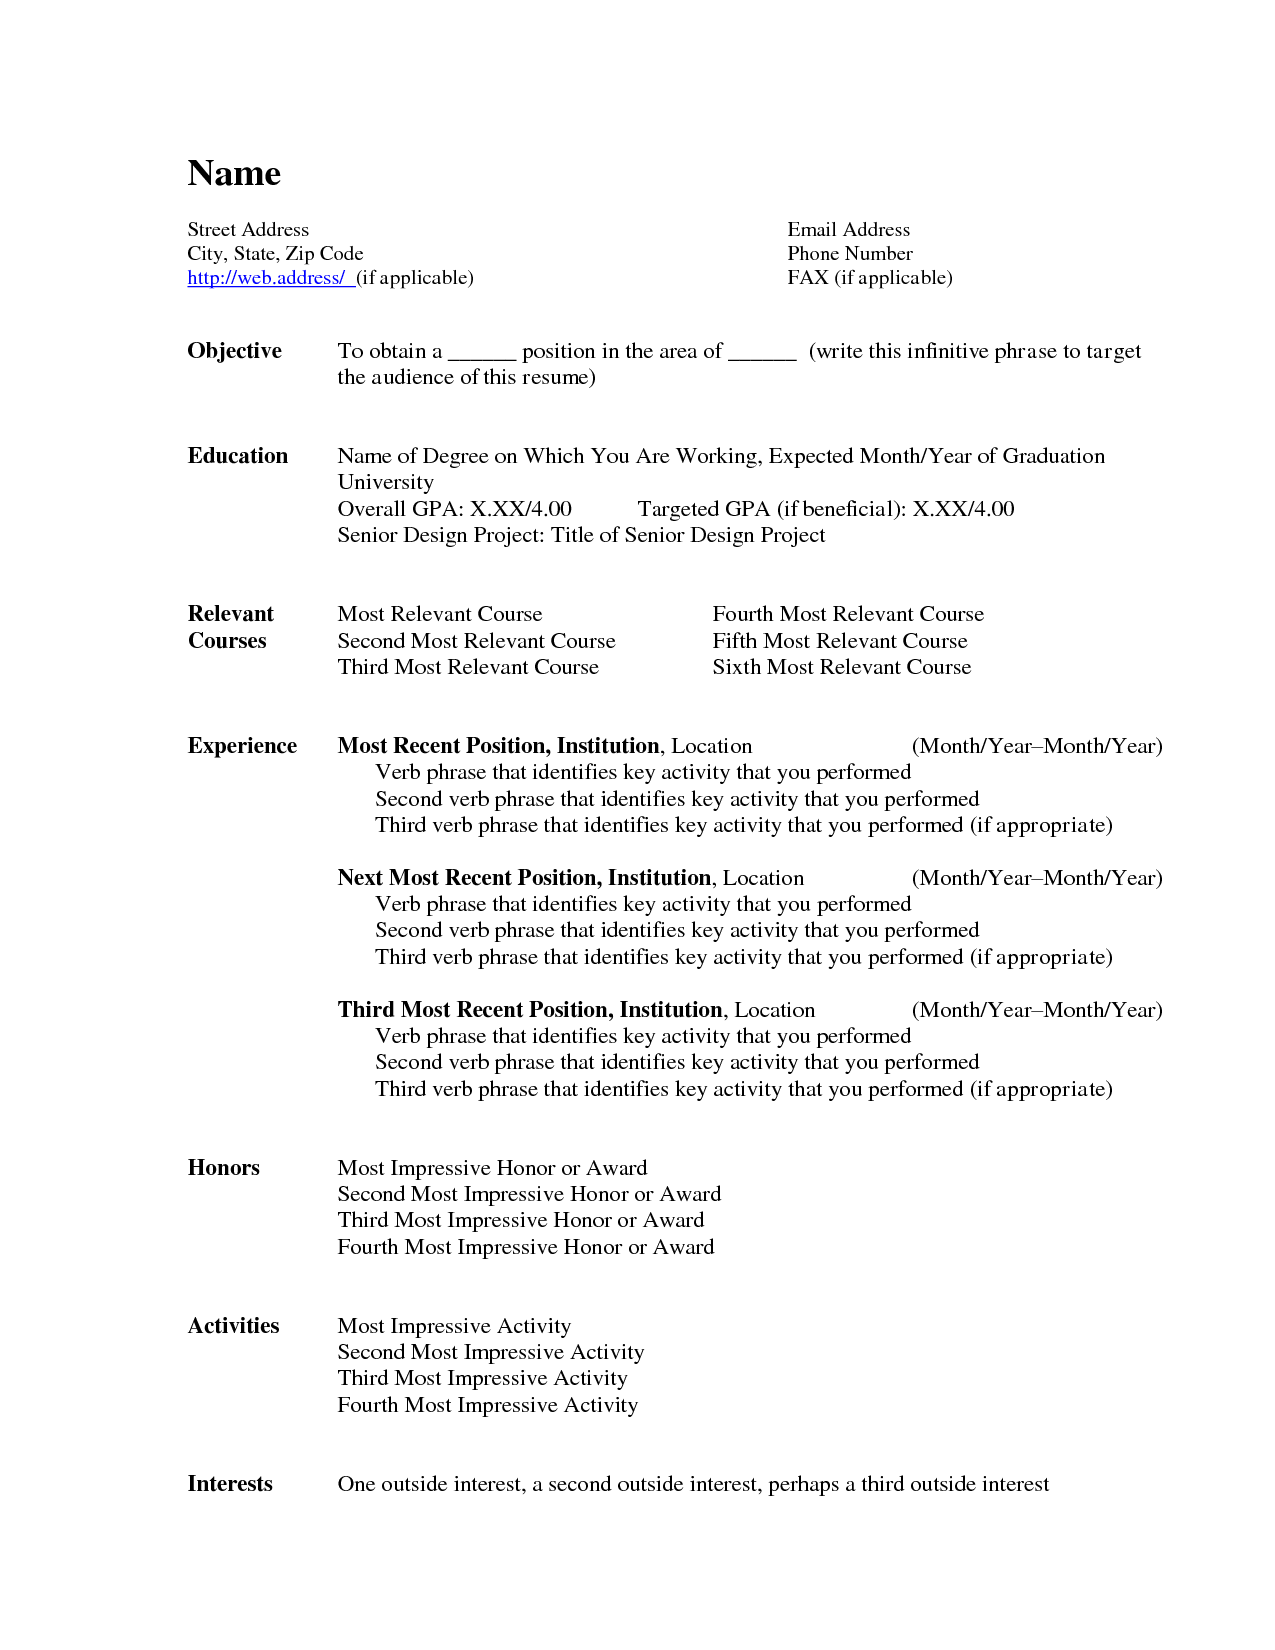 microsoft word resume template resume builder resume resume httpwwwjobresume - Sample Resume Microsoft Word